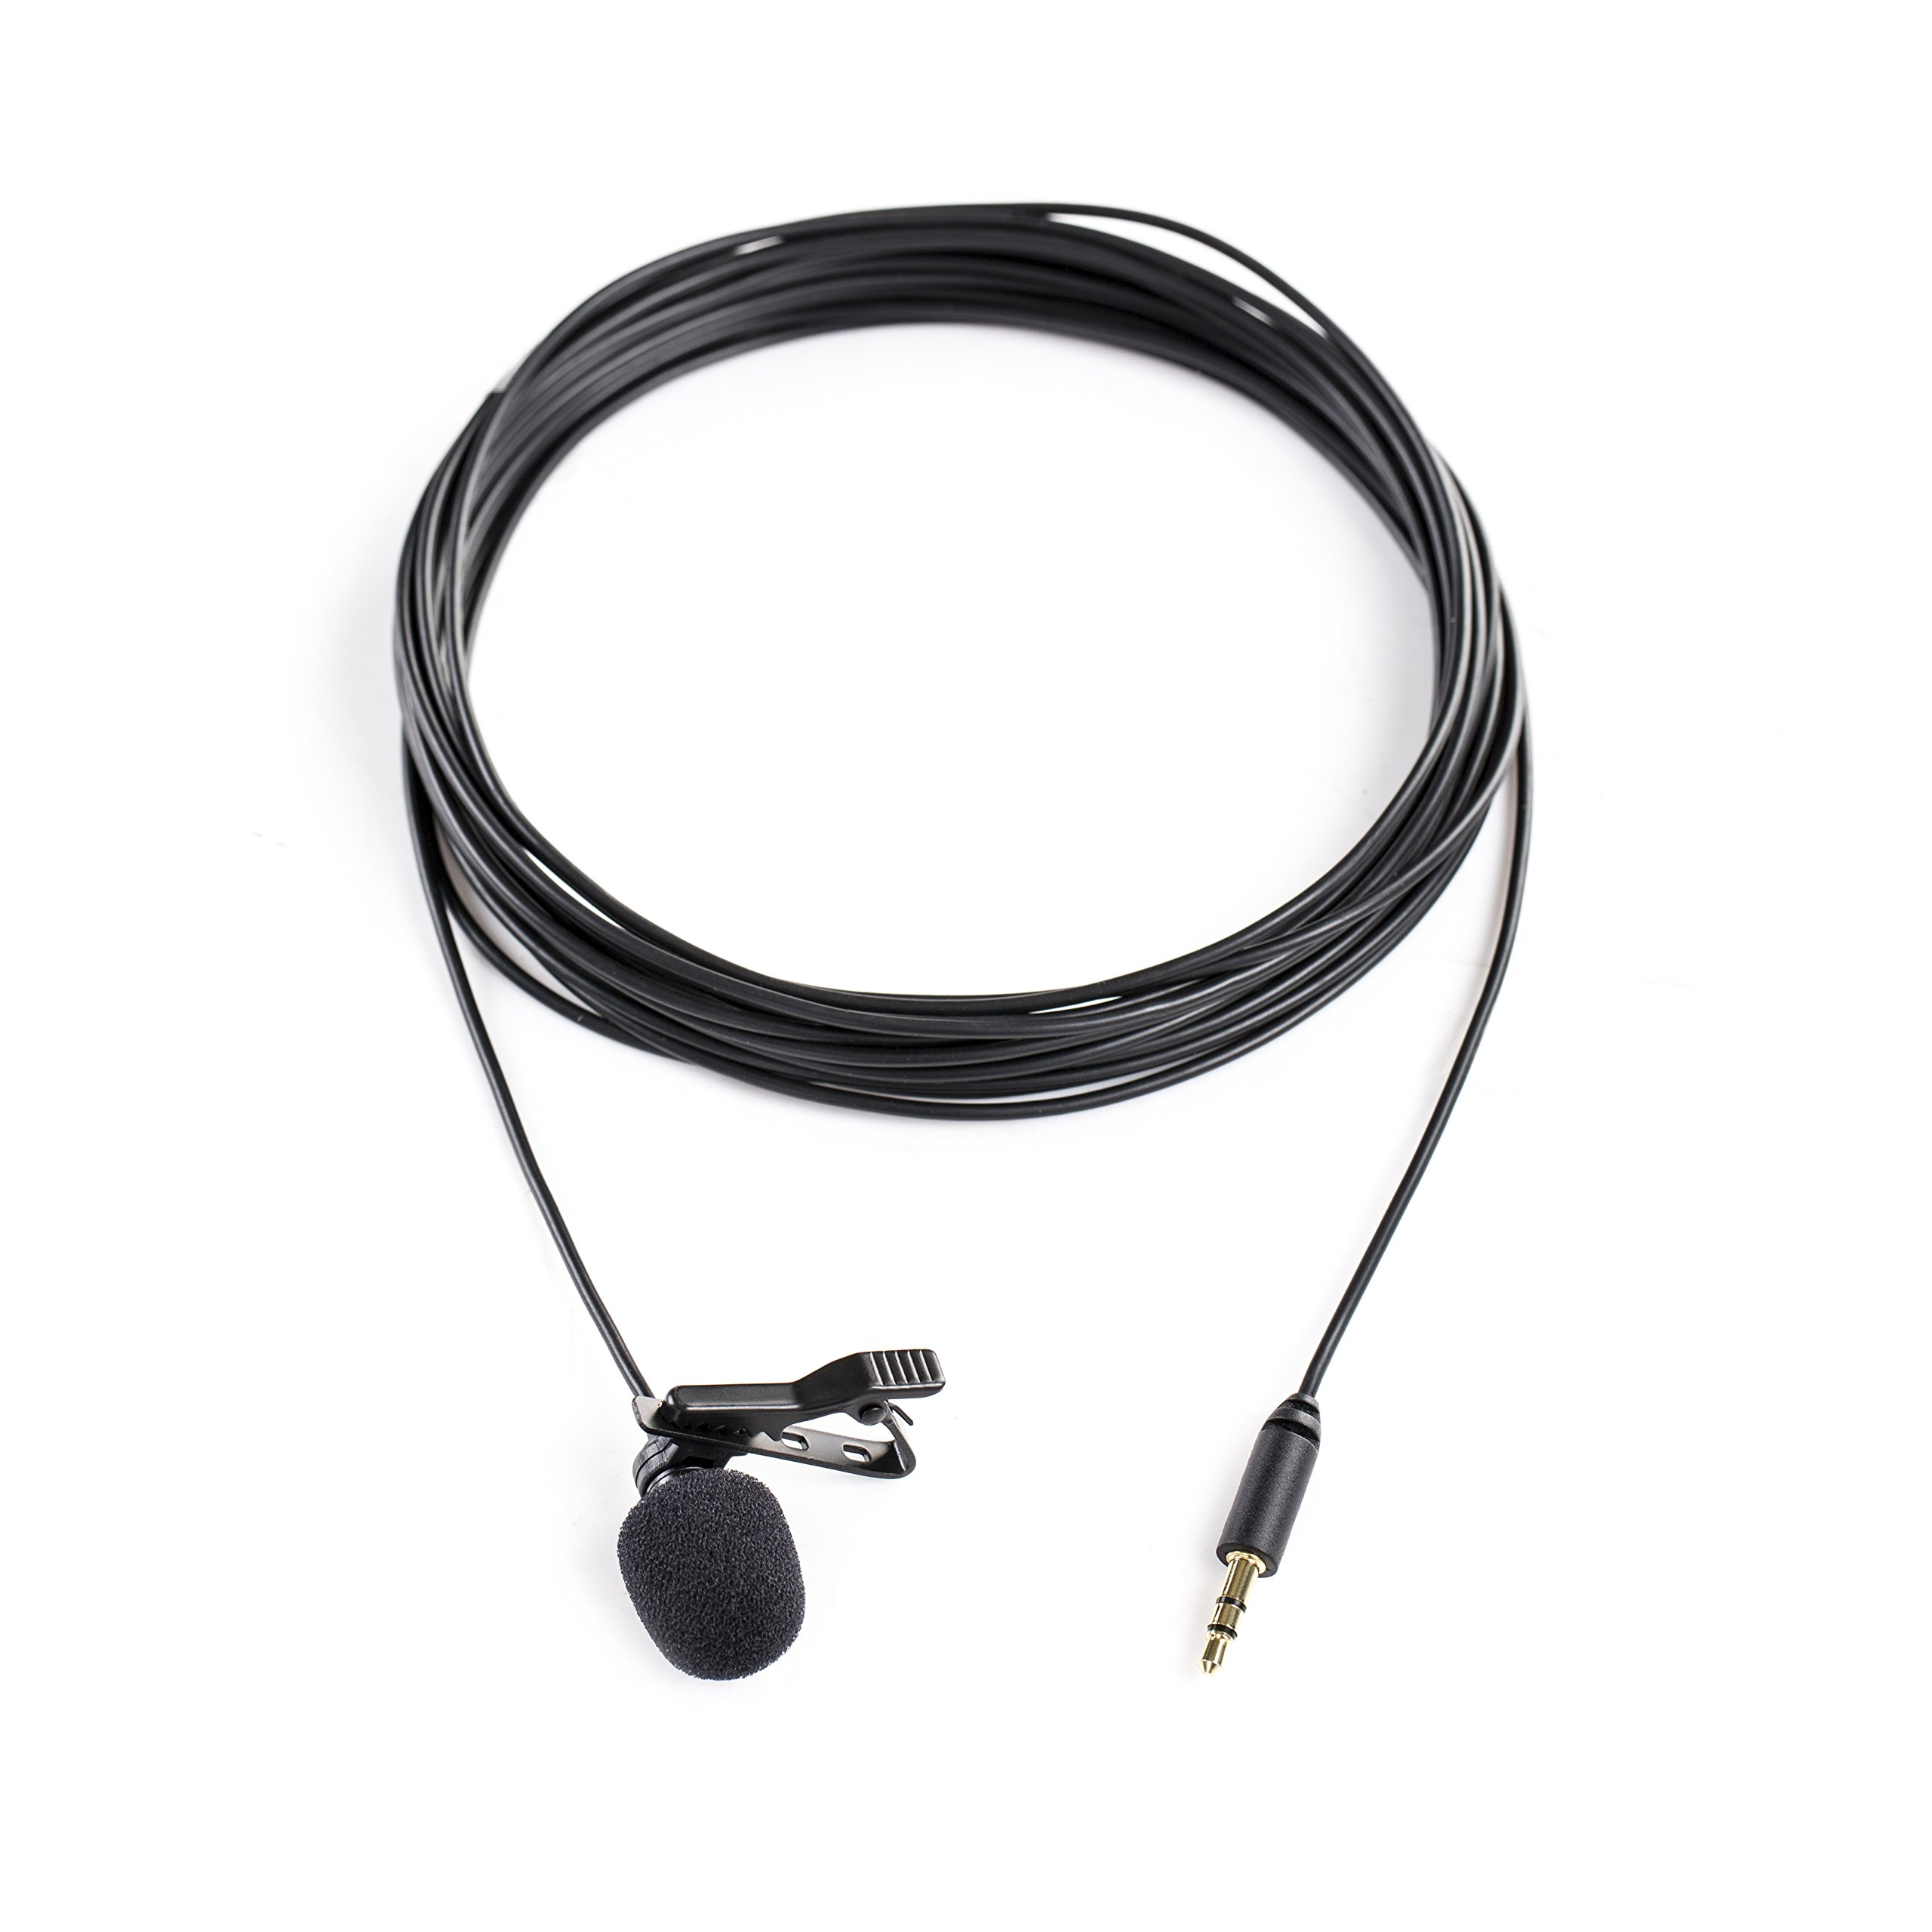 Saramonic SR-XLM1 Broadcast-Quality Lavalier Omnidirectional Microphone with 3.5mm TRS Connector for DSLR Cameras, Camcorders, Recorders & Saramonic Devices by Saramonic